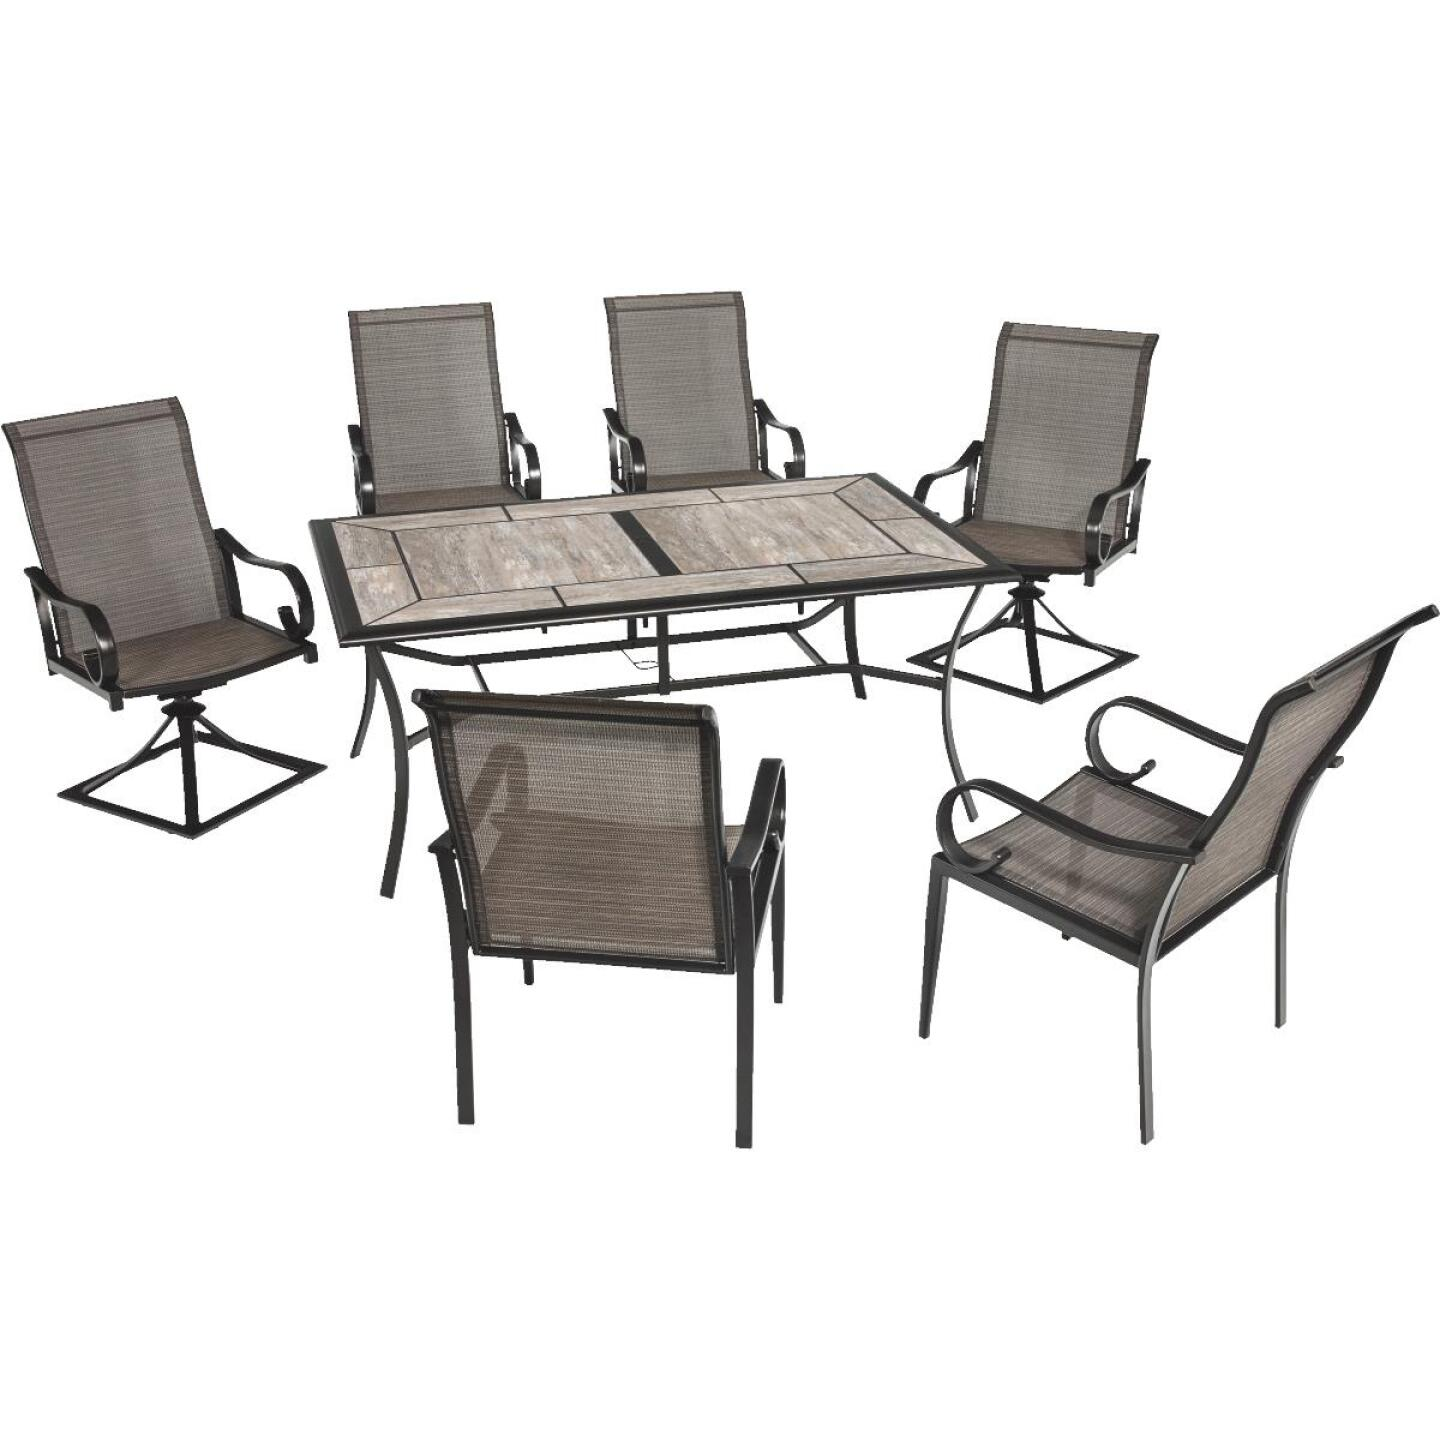 Outdoor Expressions Berkshire 7-Piece Dining Set Image 181